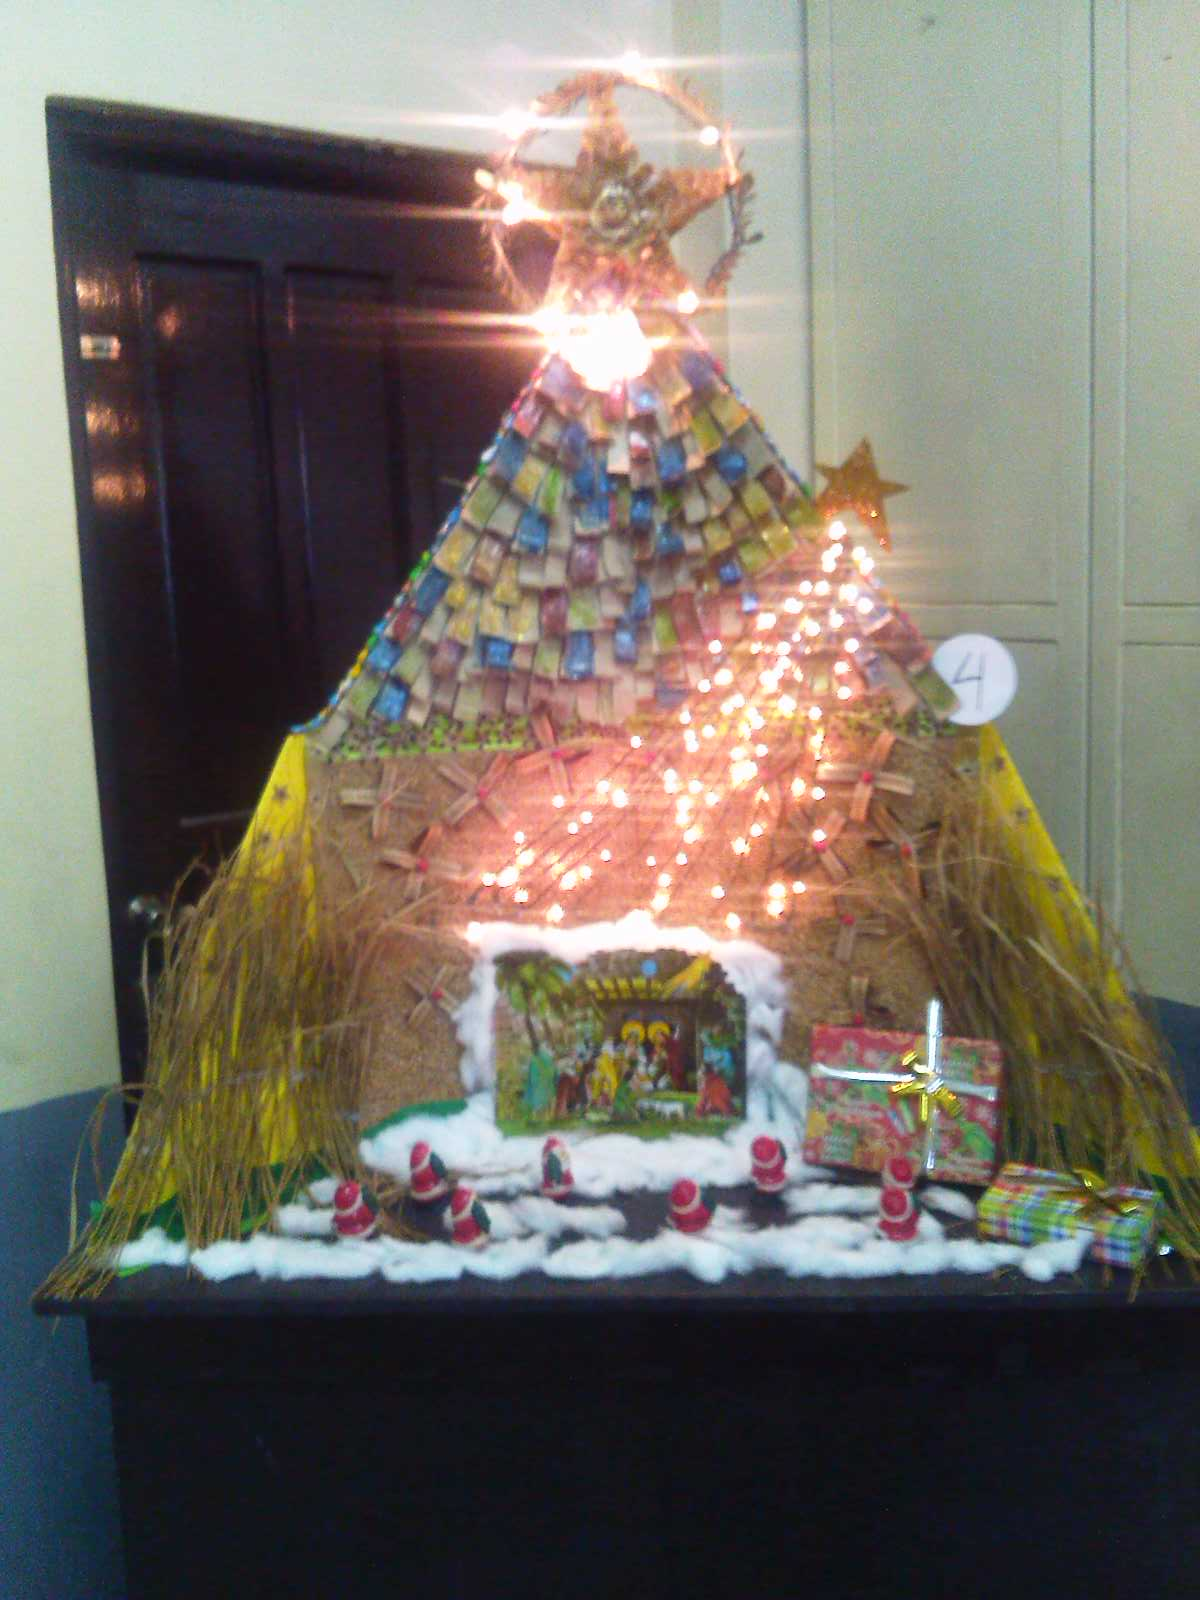 Cdsa Paskong Pinoy Sa Cdsa Christmas Decoration Contest